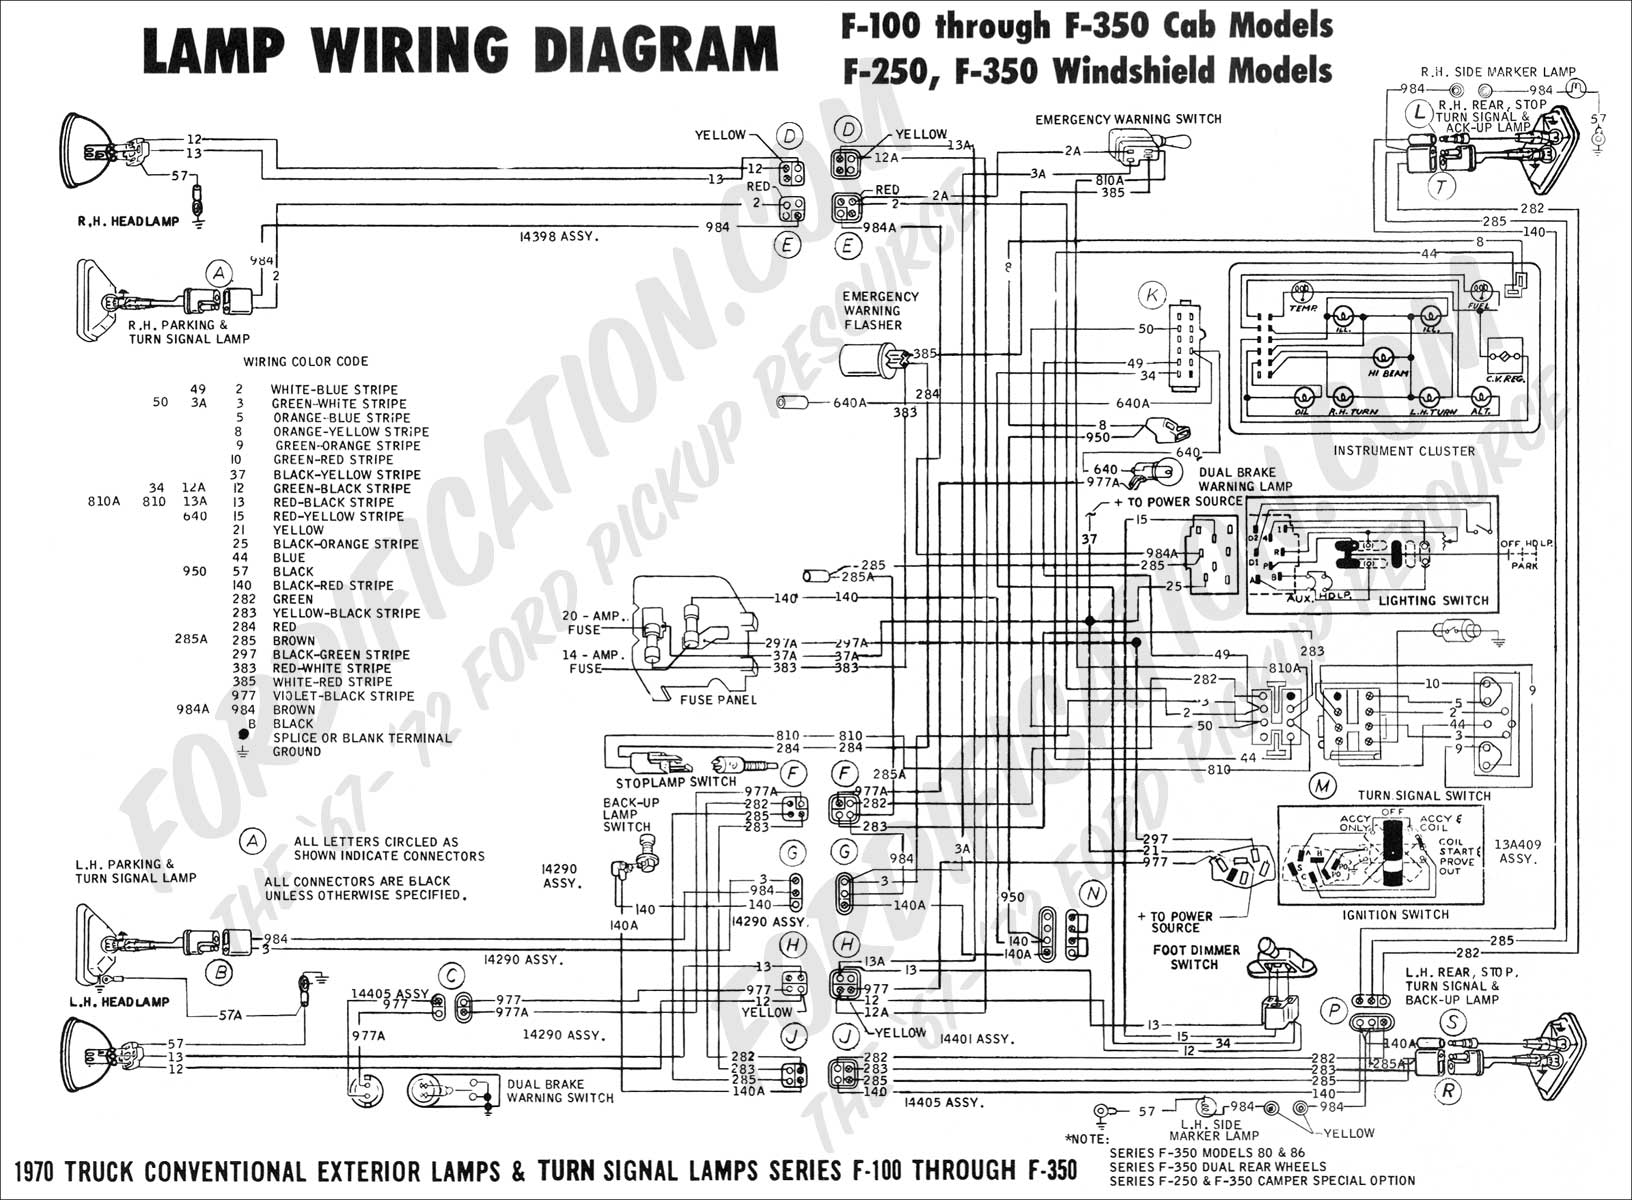 trailer wiring diagram 7 way ford with 966863 1991 Ford F350 Wiring Schematic on Lewmar Wiring Diagram in addition E 70 additionally Electrical Setup And Wiring in addition Chevy 3 4 Ton Rear End Schematic moreover 98 Ta a Running Lights Wiring Diagram.